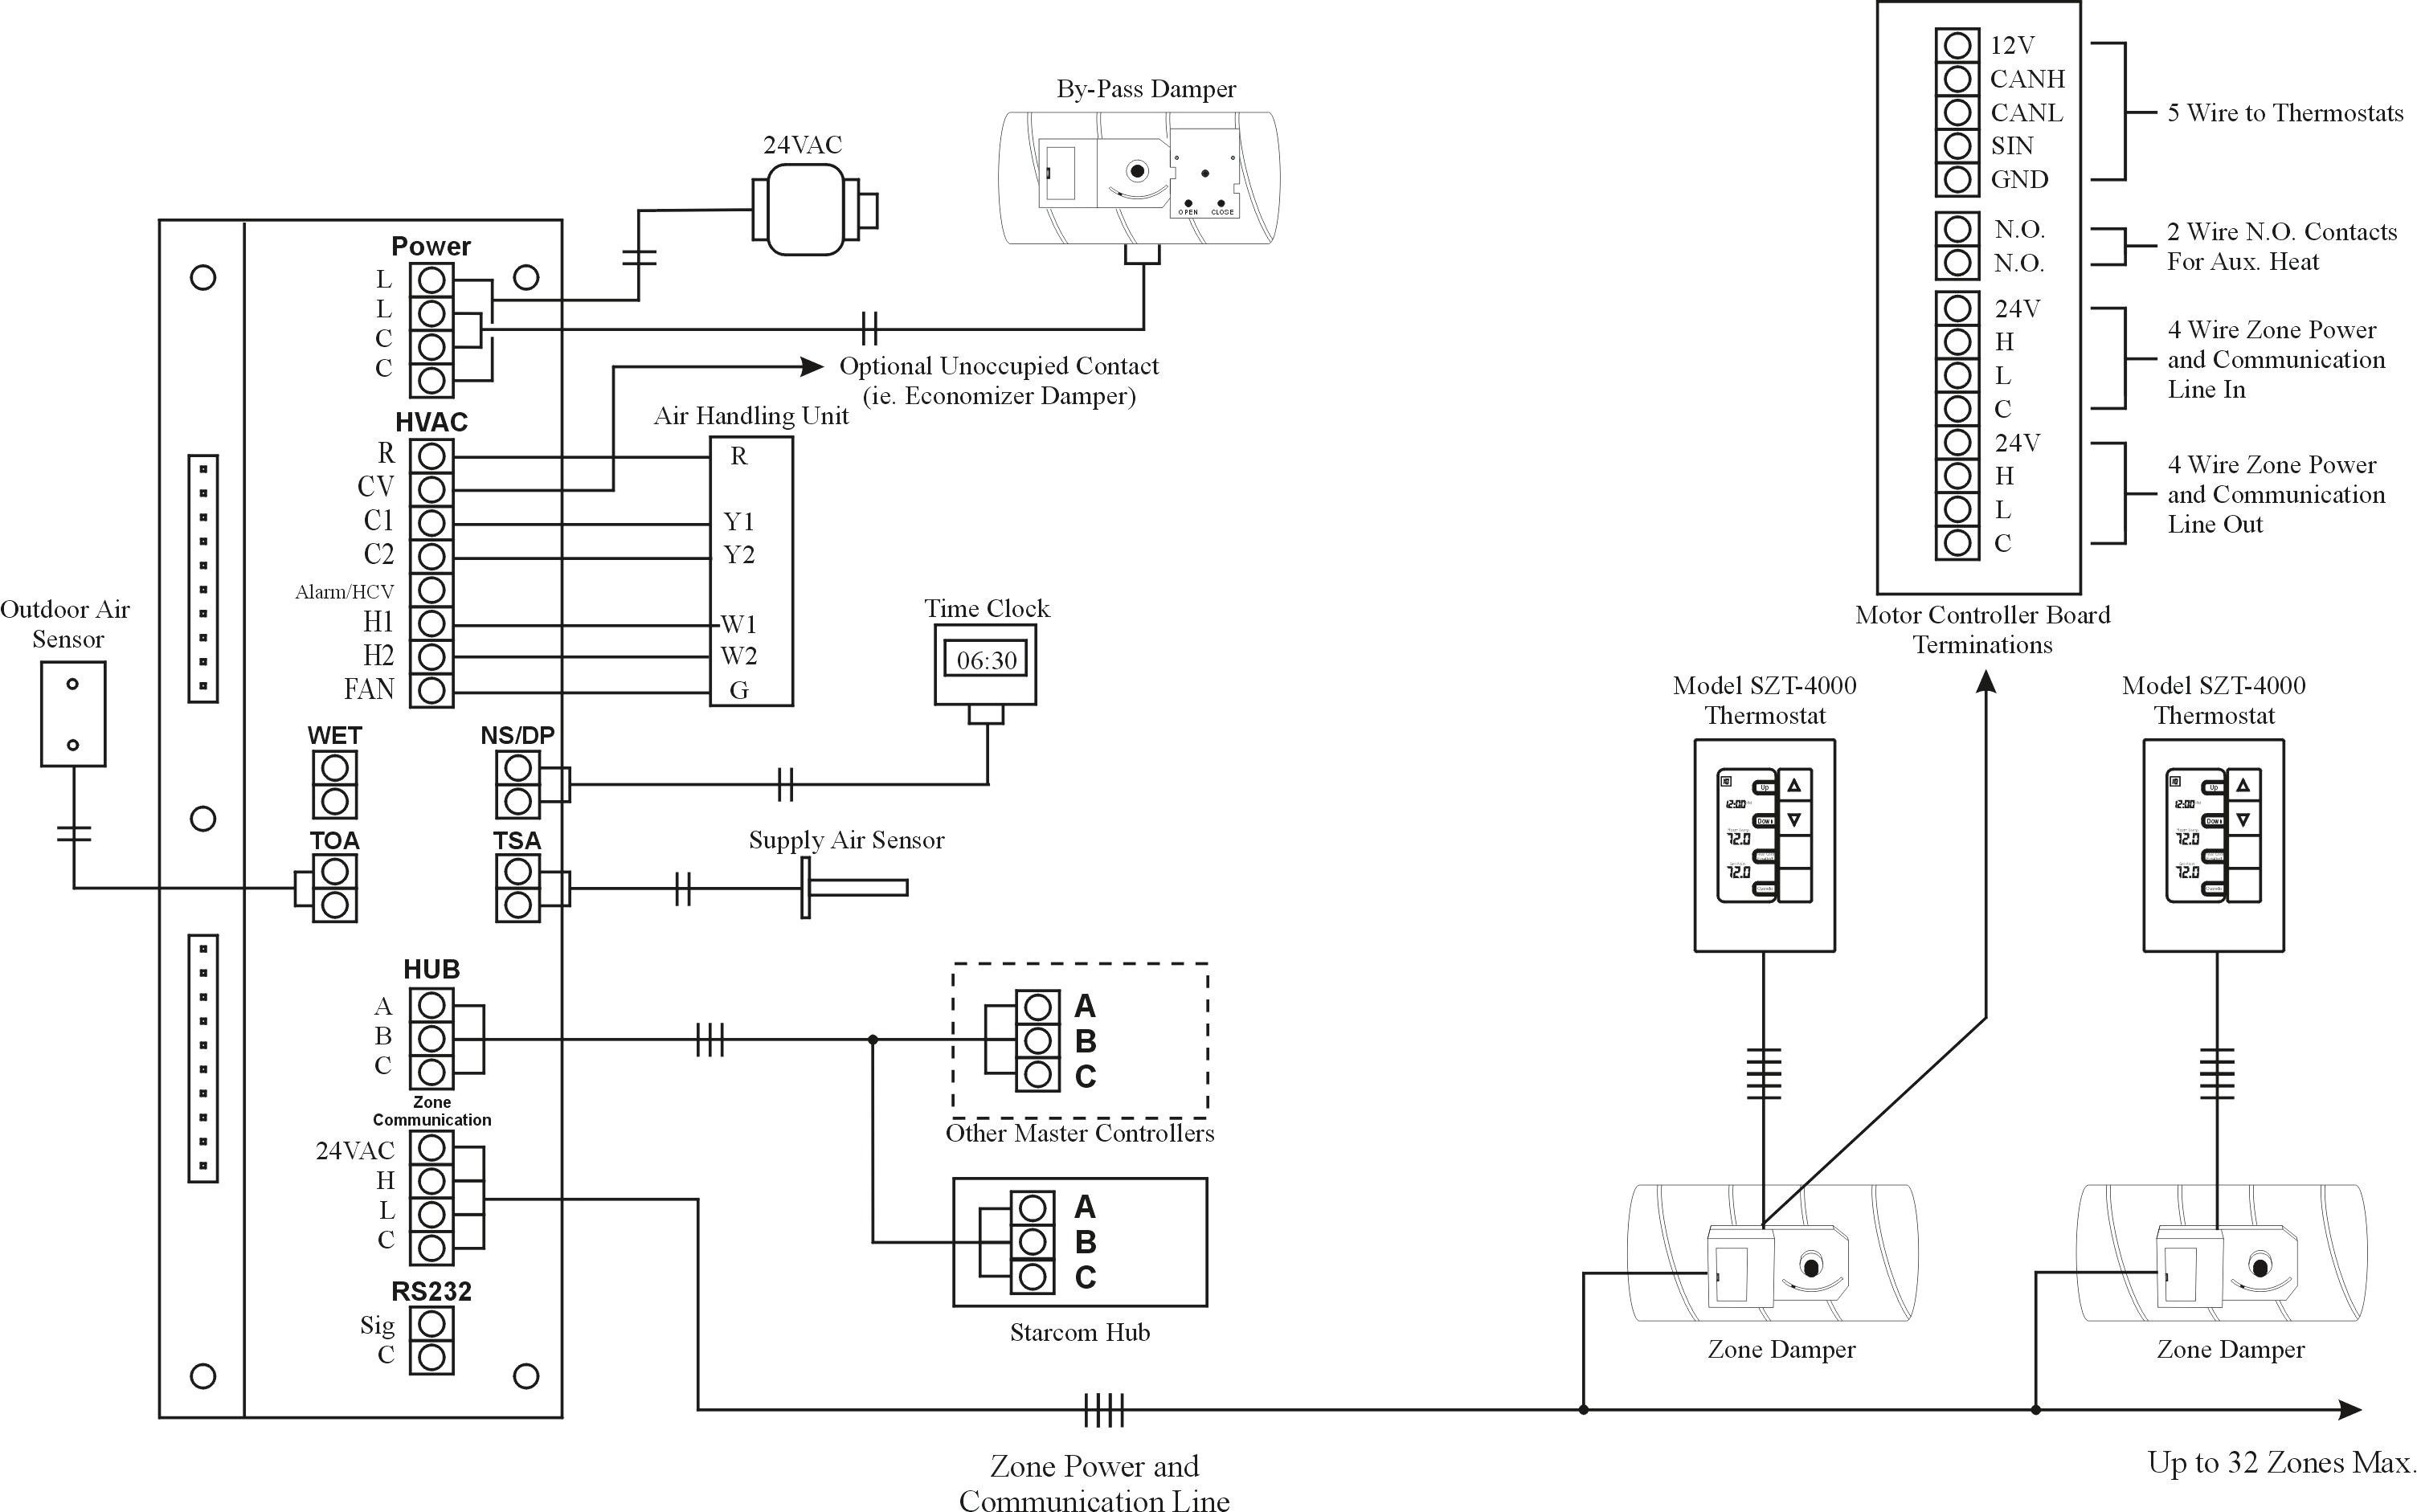 goodman heat pump thermostat wiring diagram Download-Goodman Heat Pump Thermostat Wiring Diagram Awesome Furnace And 15-b